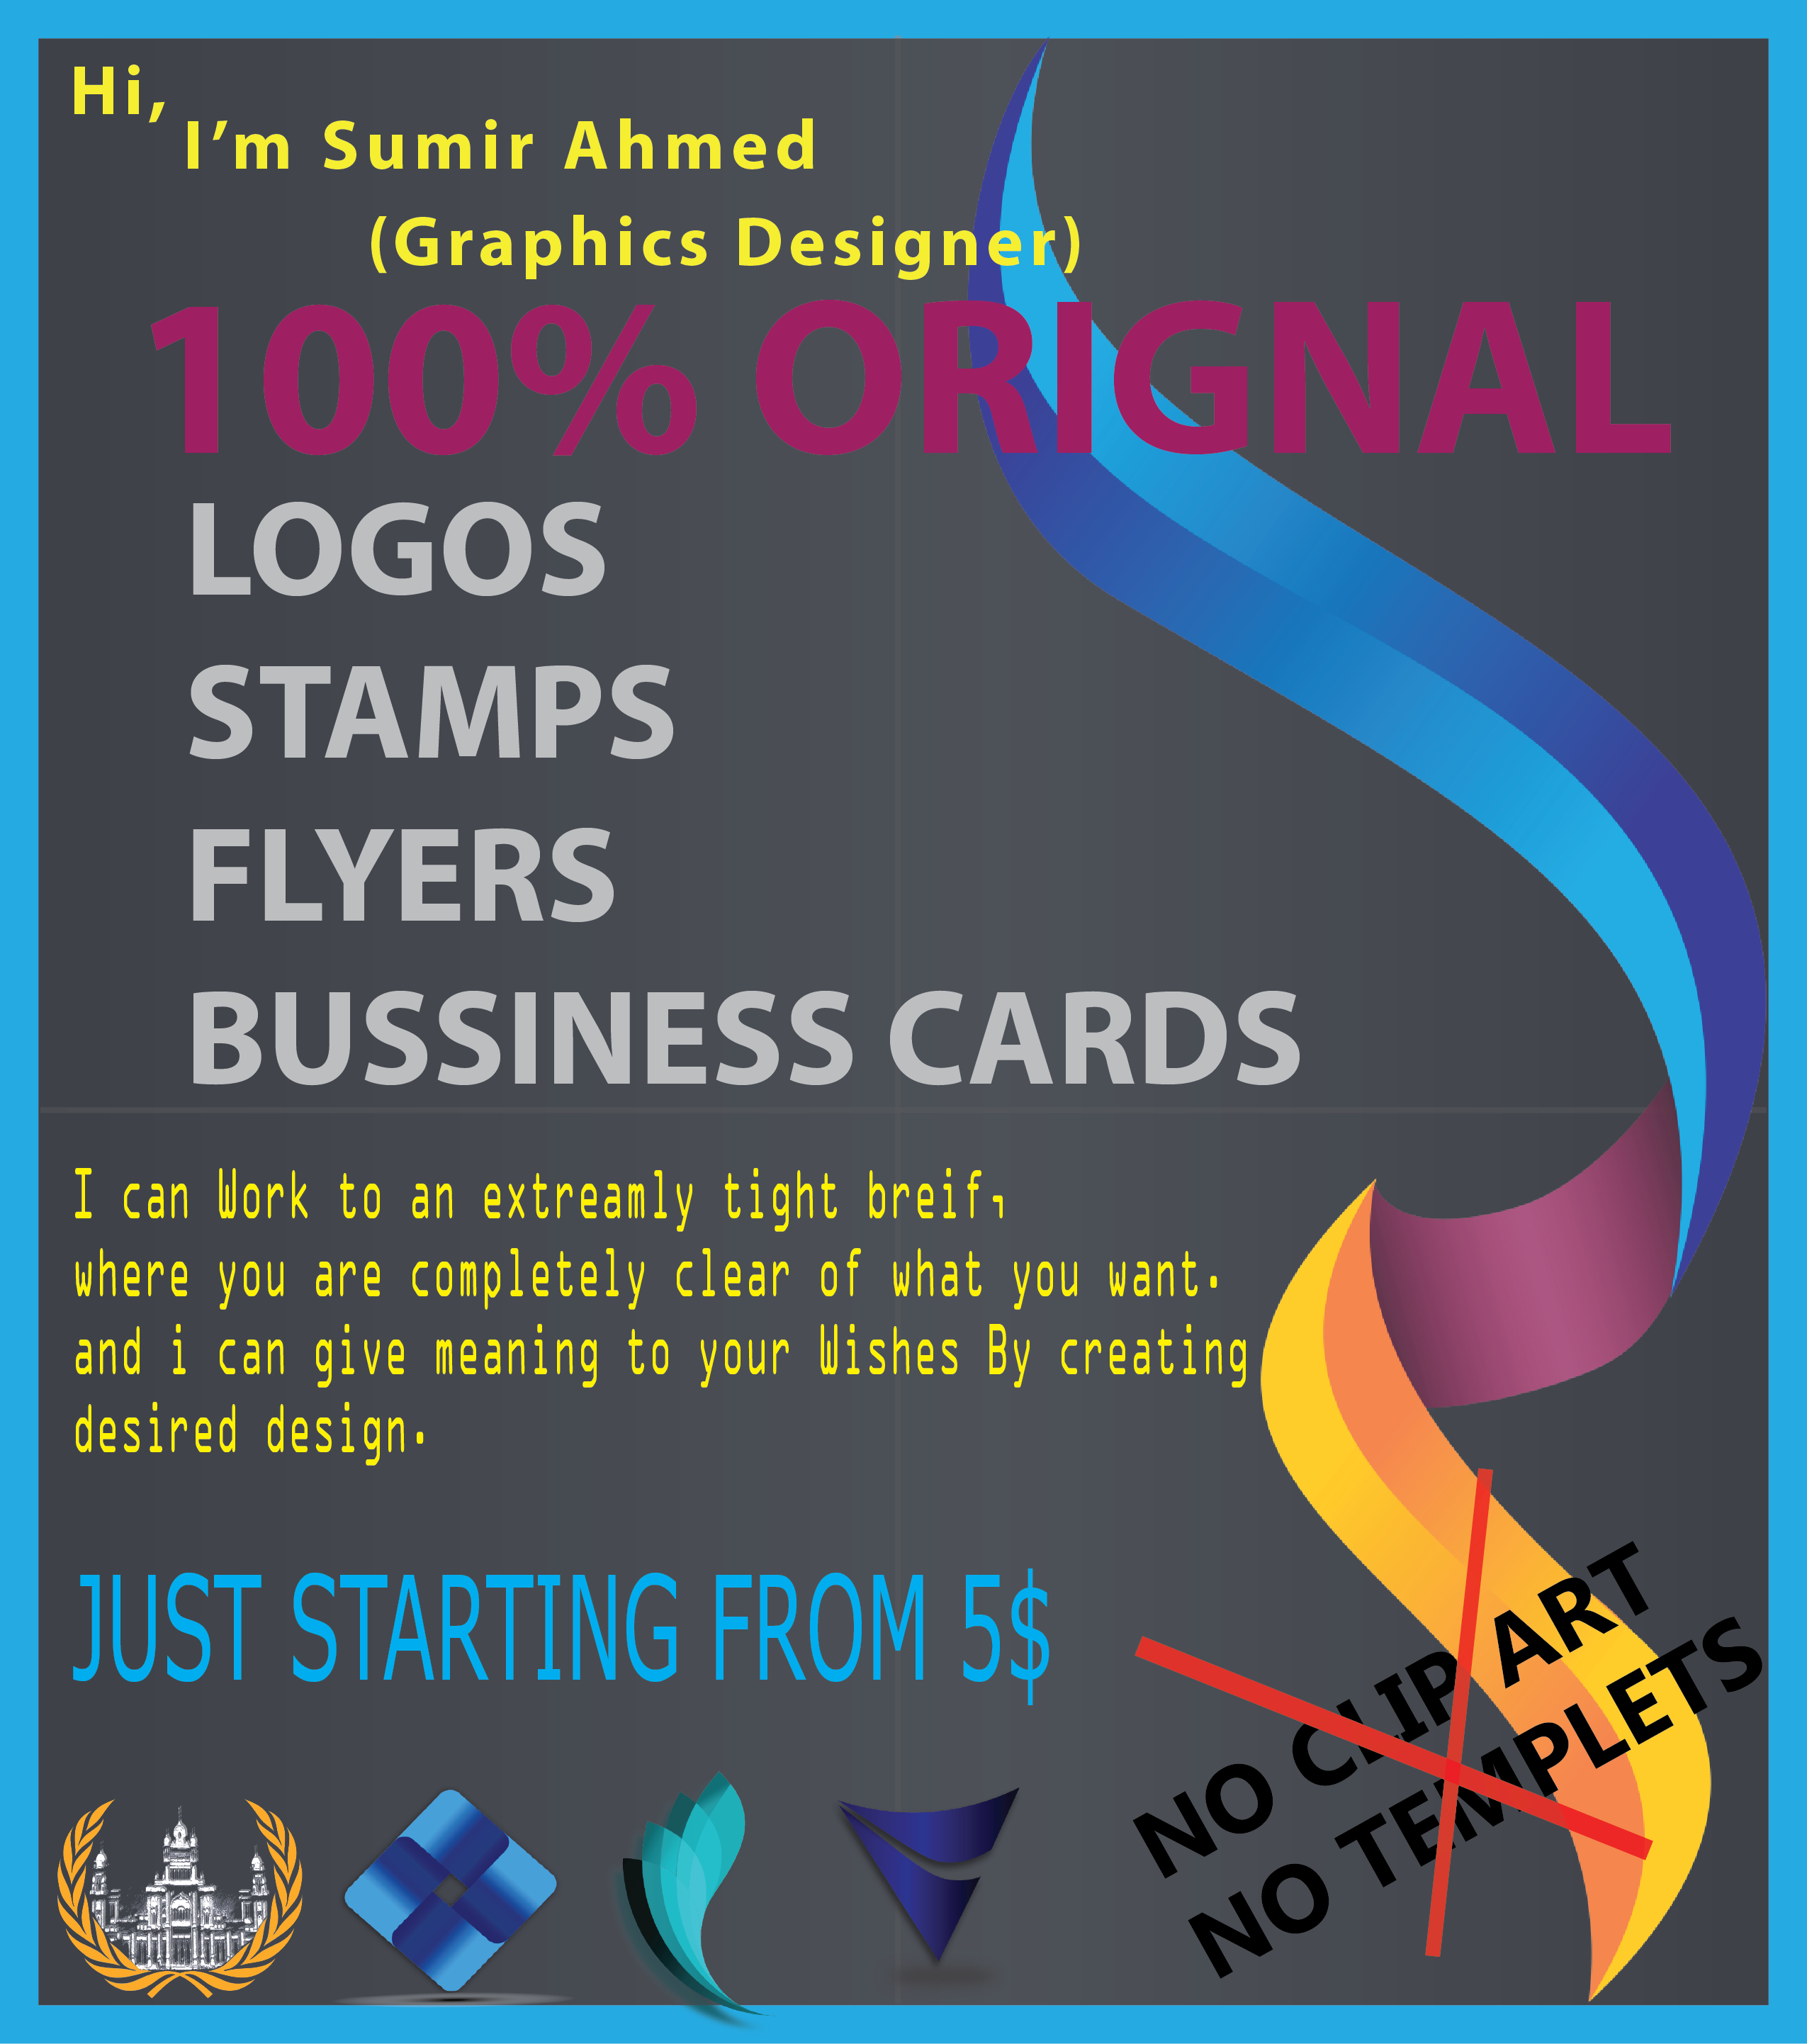 Design Logos / Business Cards Etc You want for $5 - SEOClerks